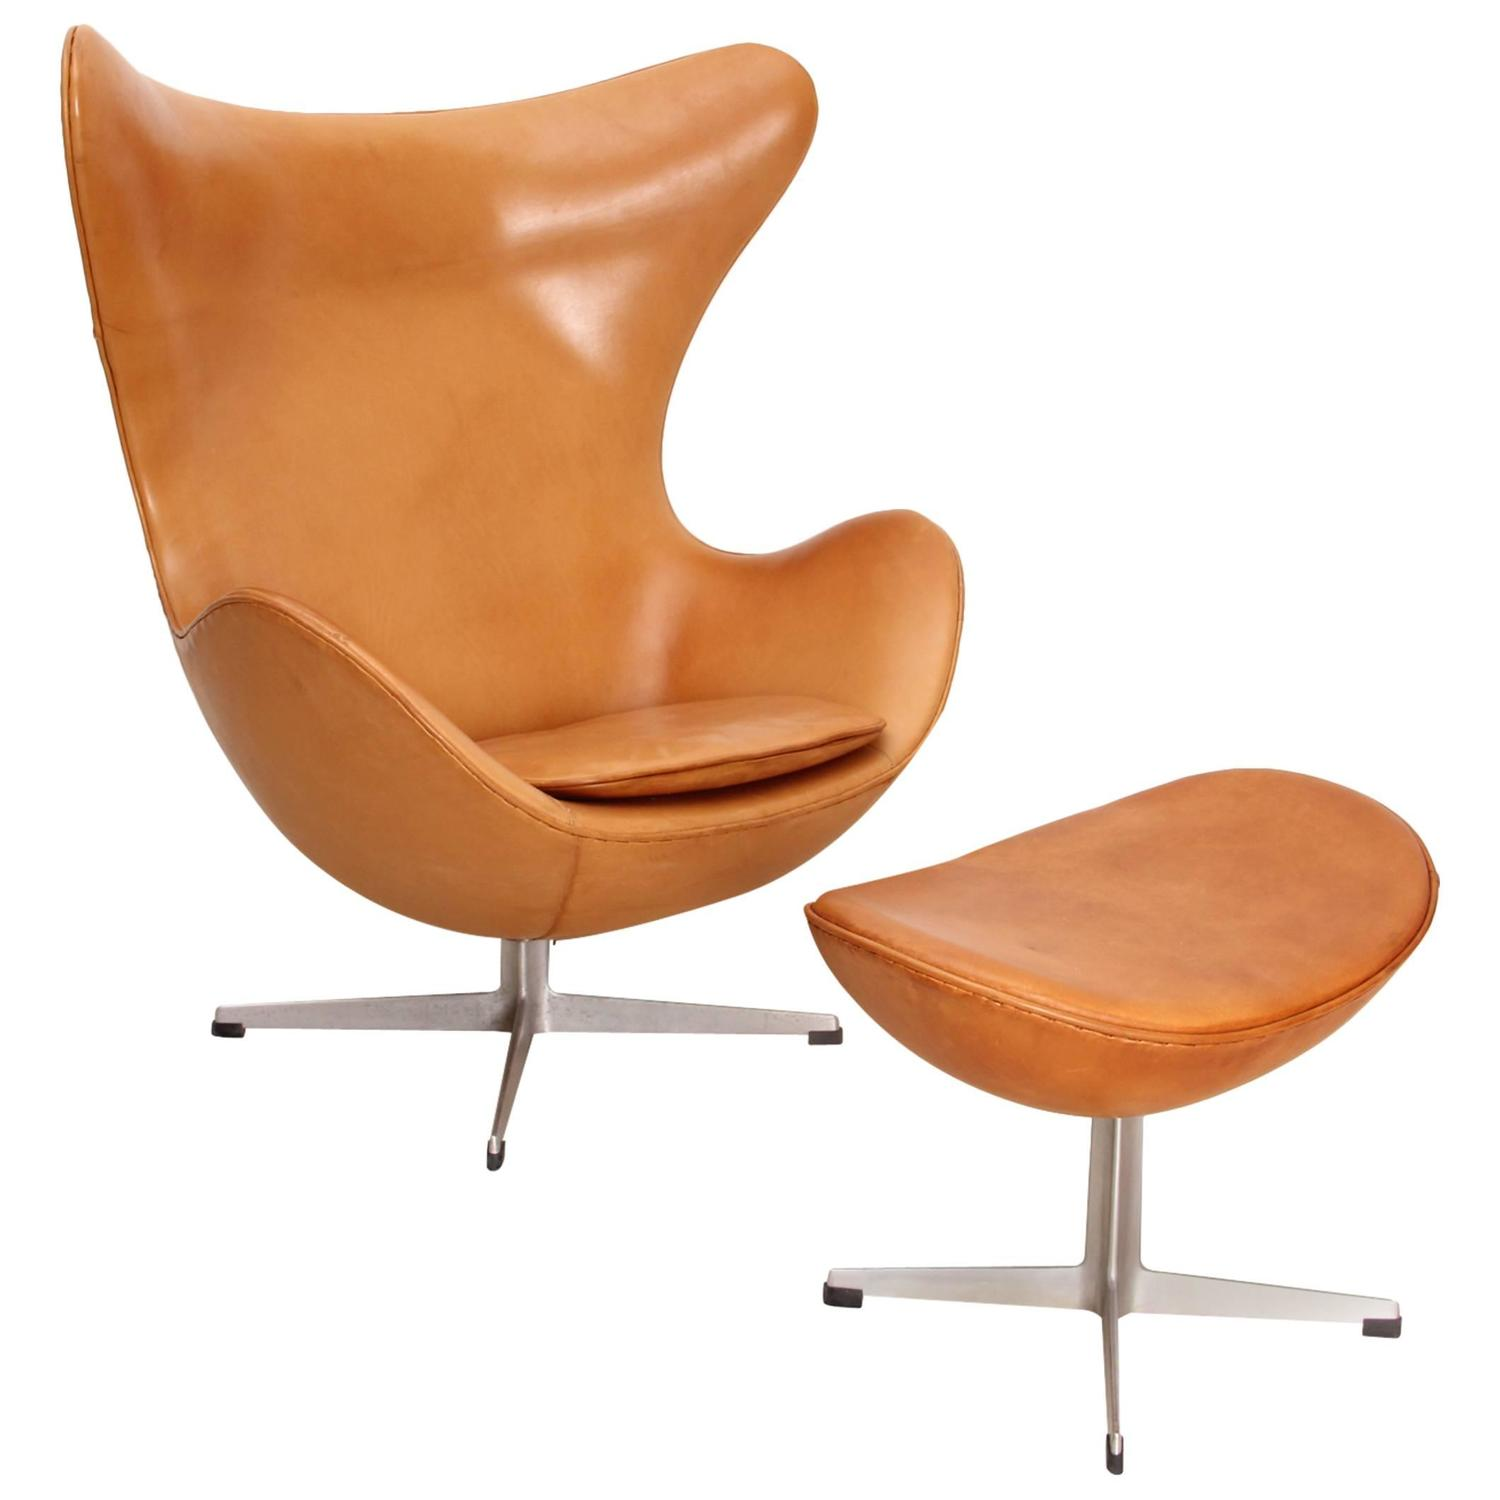 egg chair 1 awesome images of egg chairs for sale 18 sessel egg chair esszimmer mit. Black Bedroom Furniture Sets. Home Design Ideas